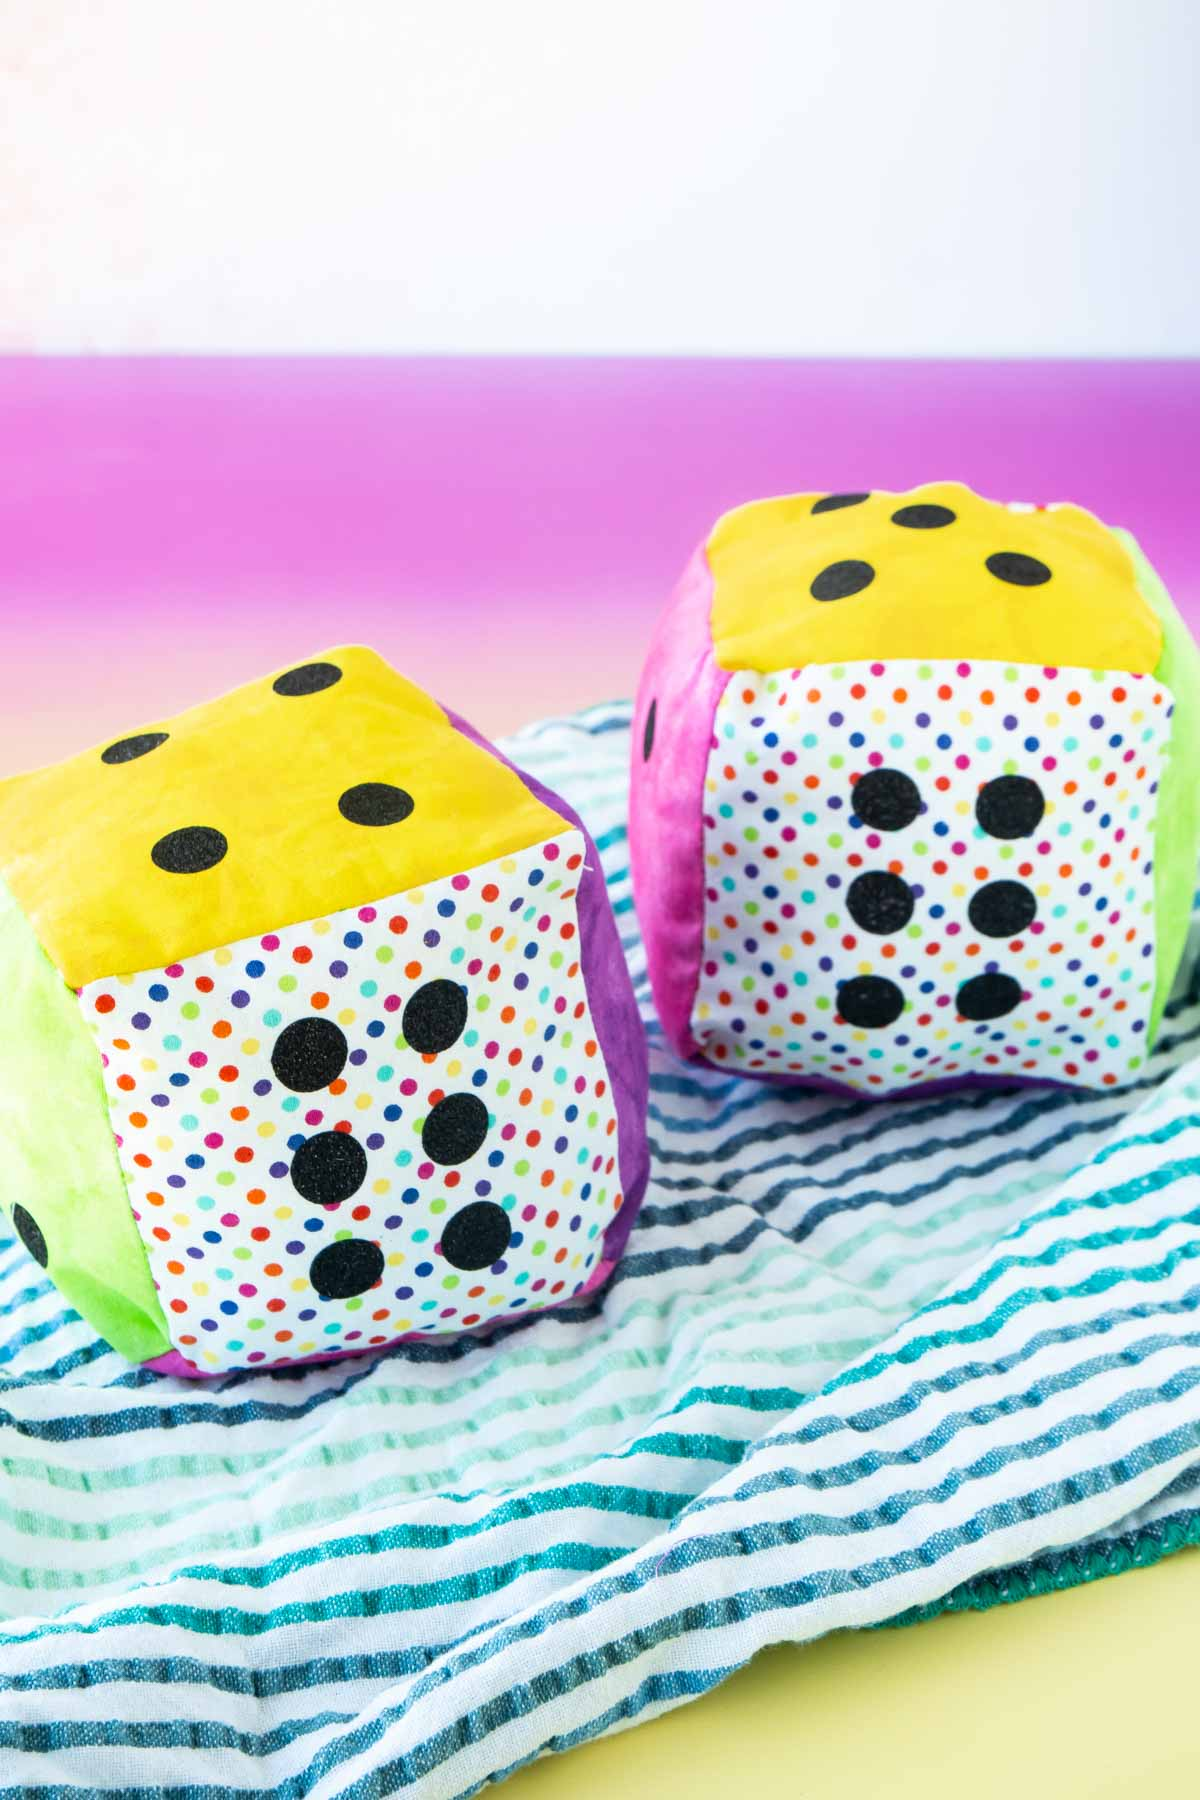 Two colorful DIY dice made out of fabric